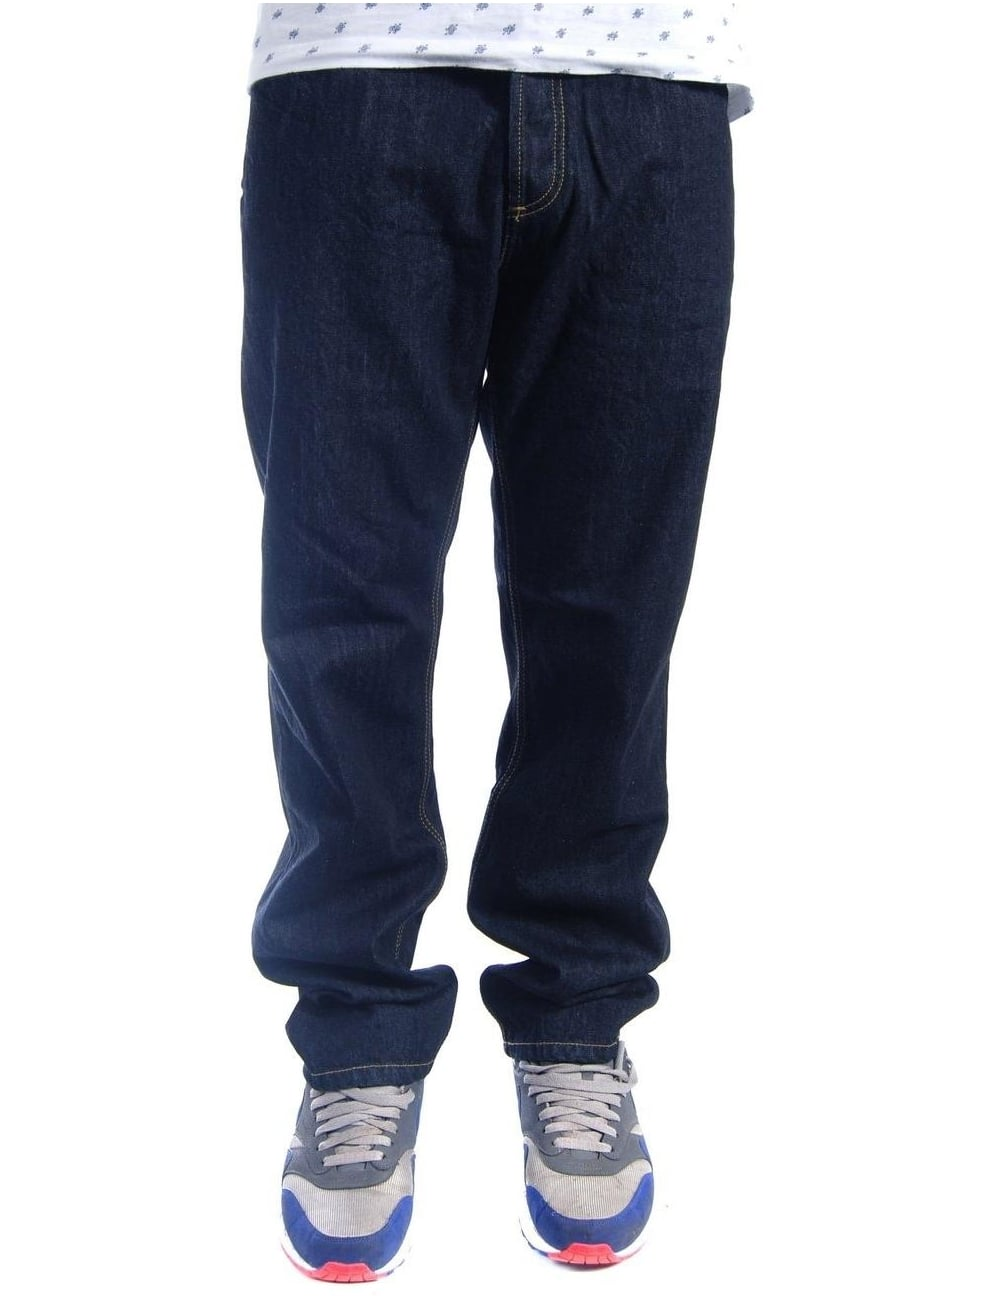 90c20f28 Carhartt WIP Texas Pant - Blue Rinsed (Hanford) - Clothing from Fat ...